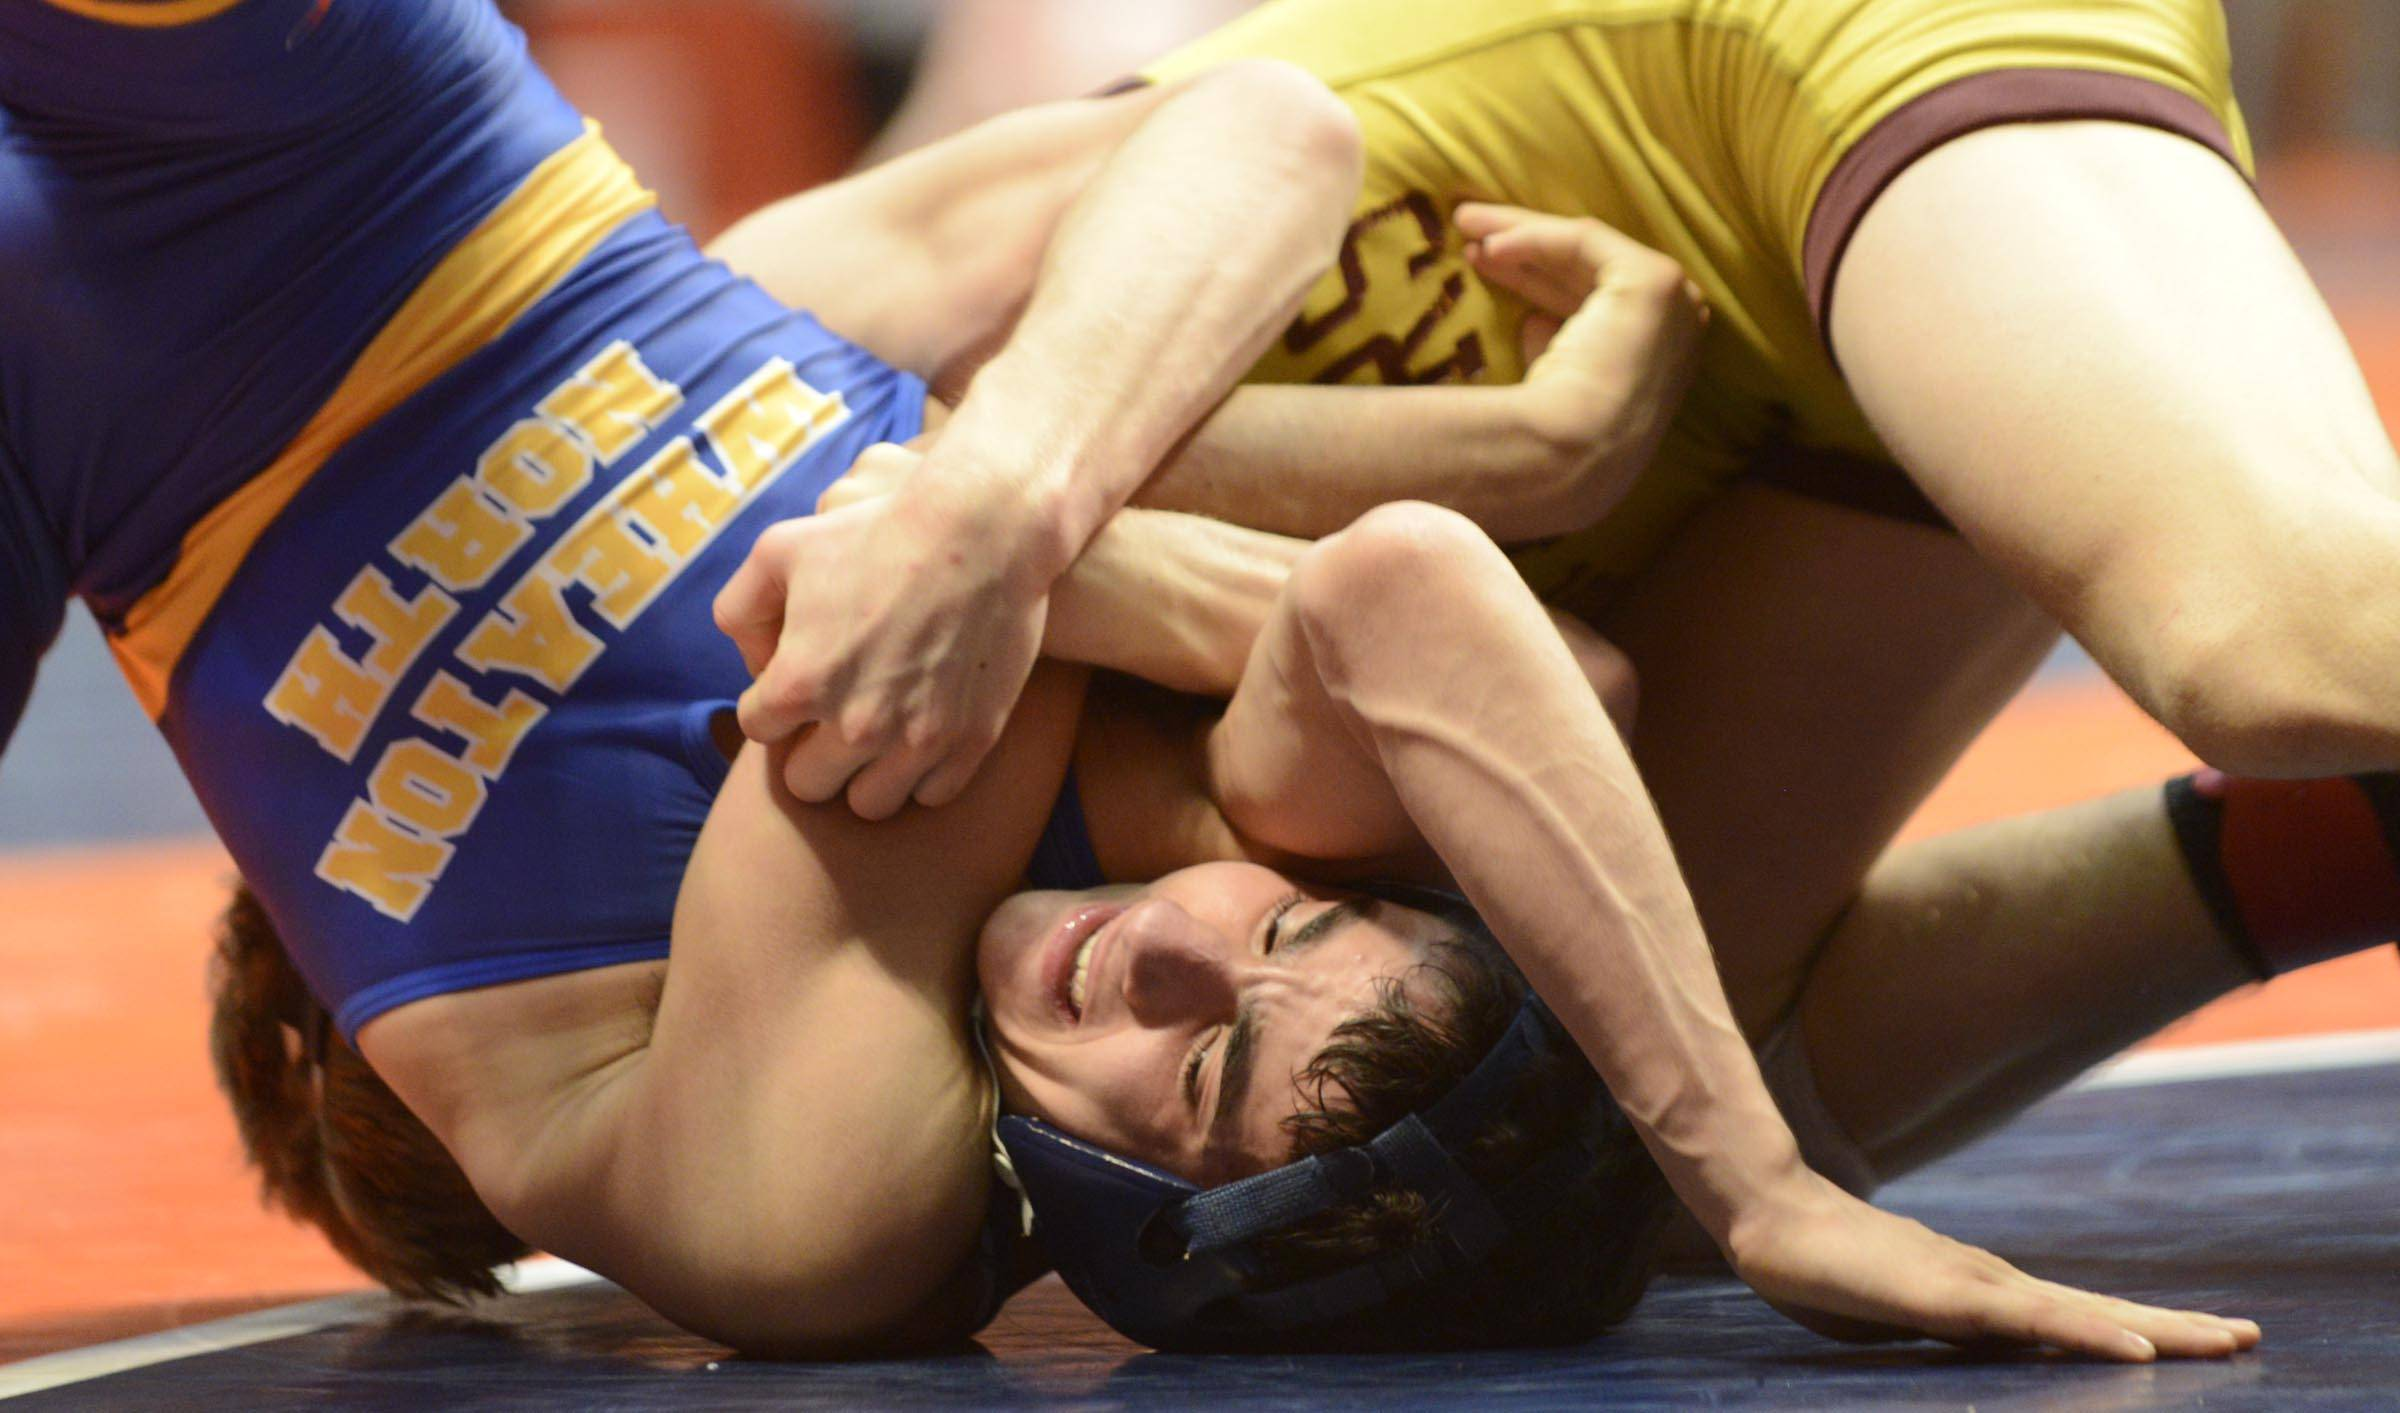 Dylan Thurston of Wheaton North High School competes against Shayne Oster of Lockport High School Saturday in the 126-pound weight class third place match of the wrestling IHSA Class 3A state tournament at State Farm Center in Champaign.